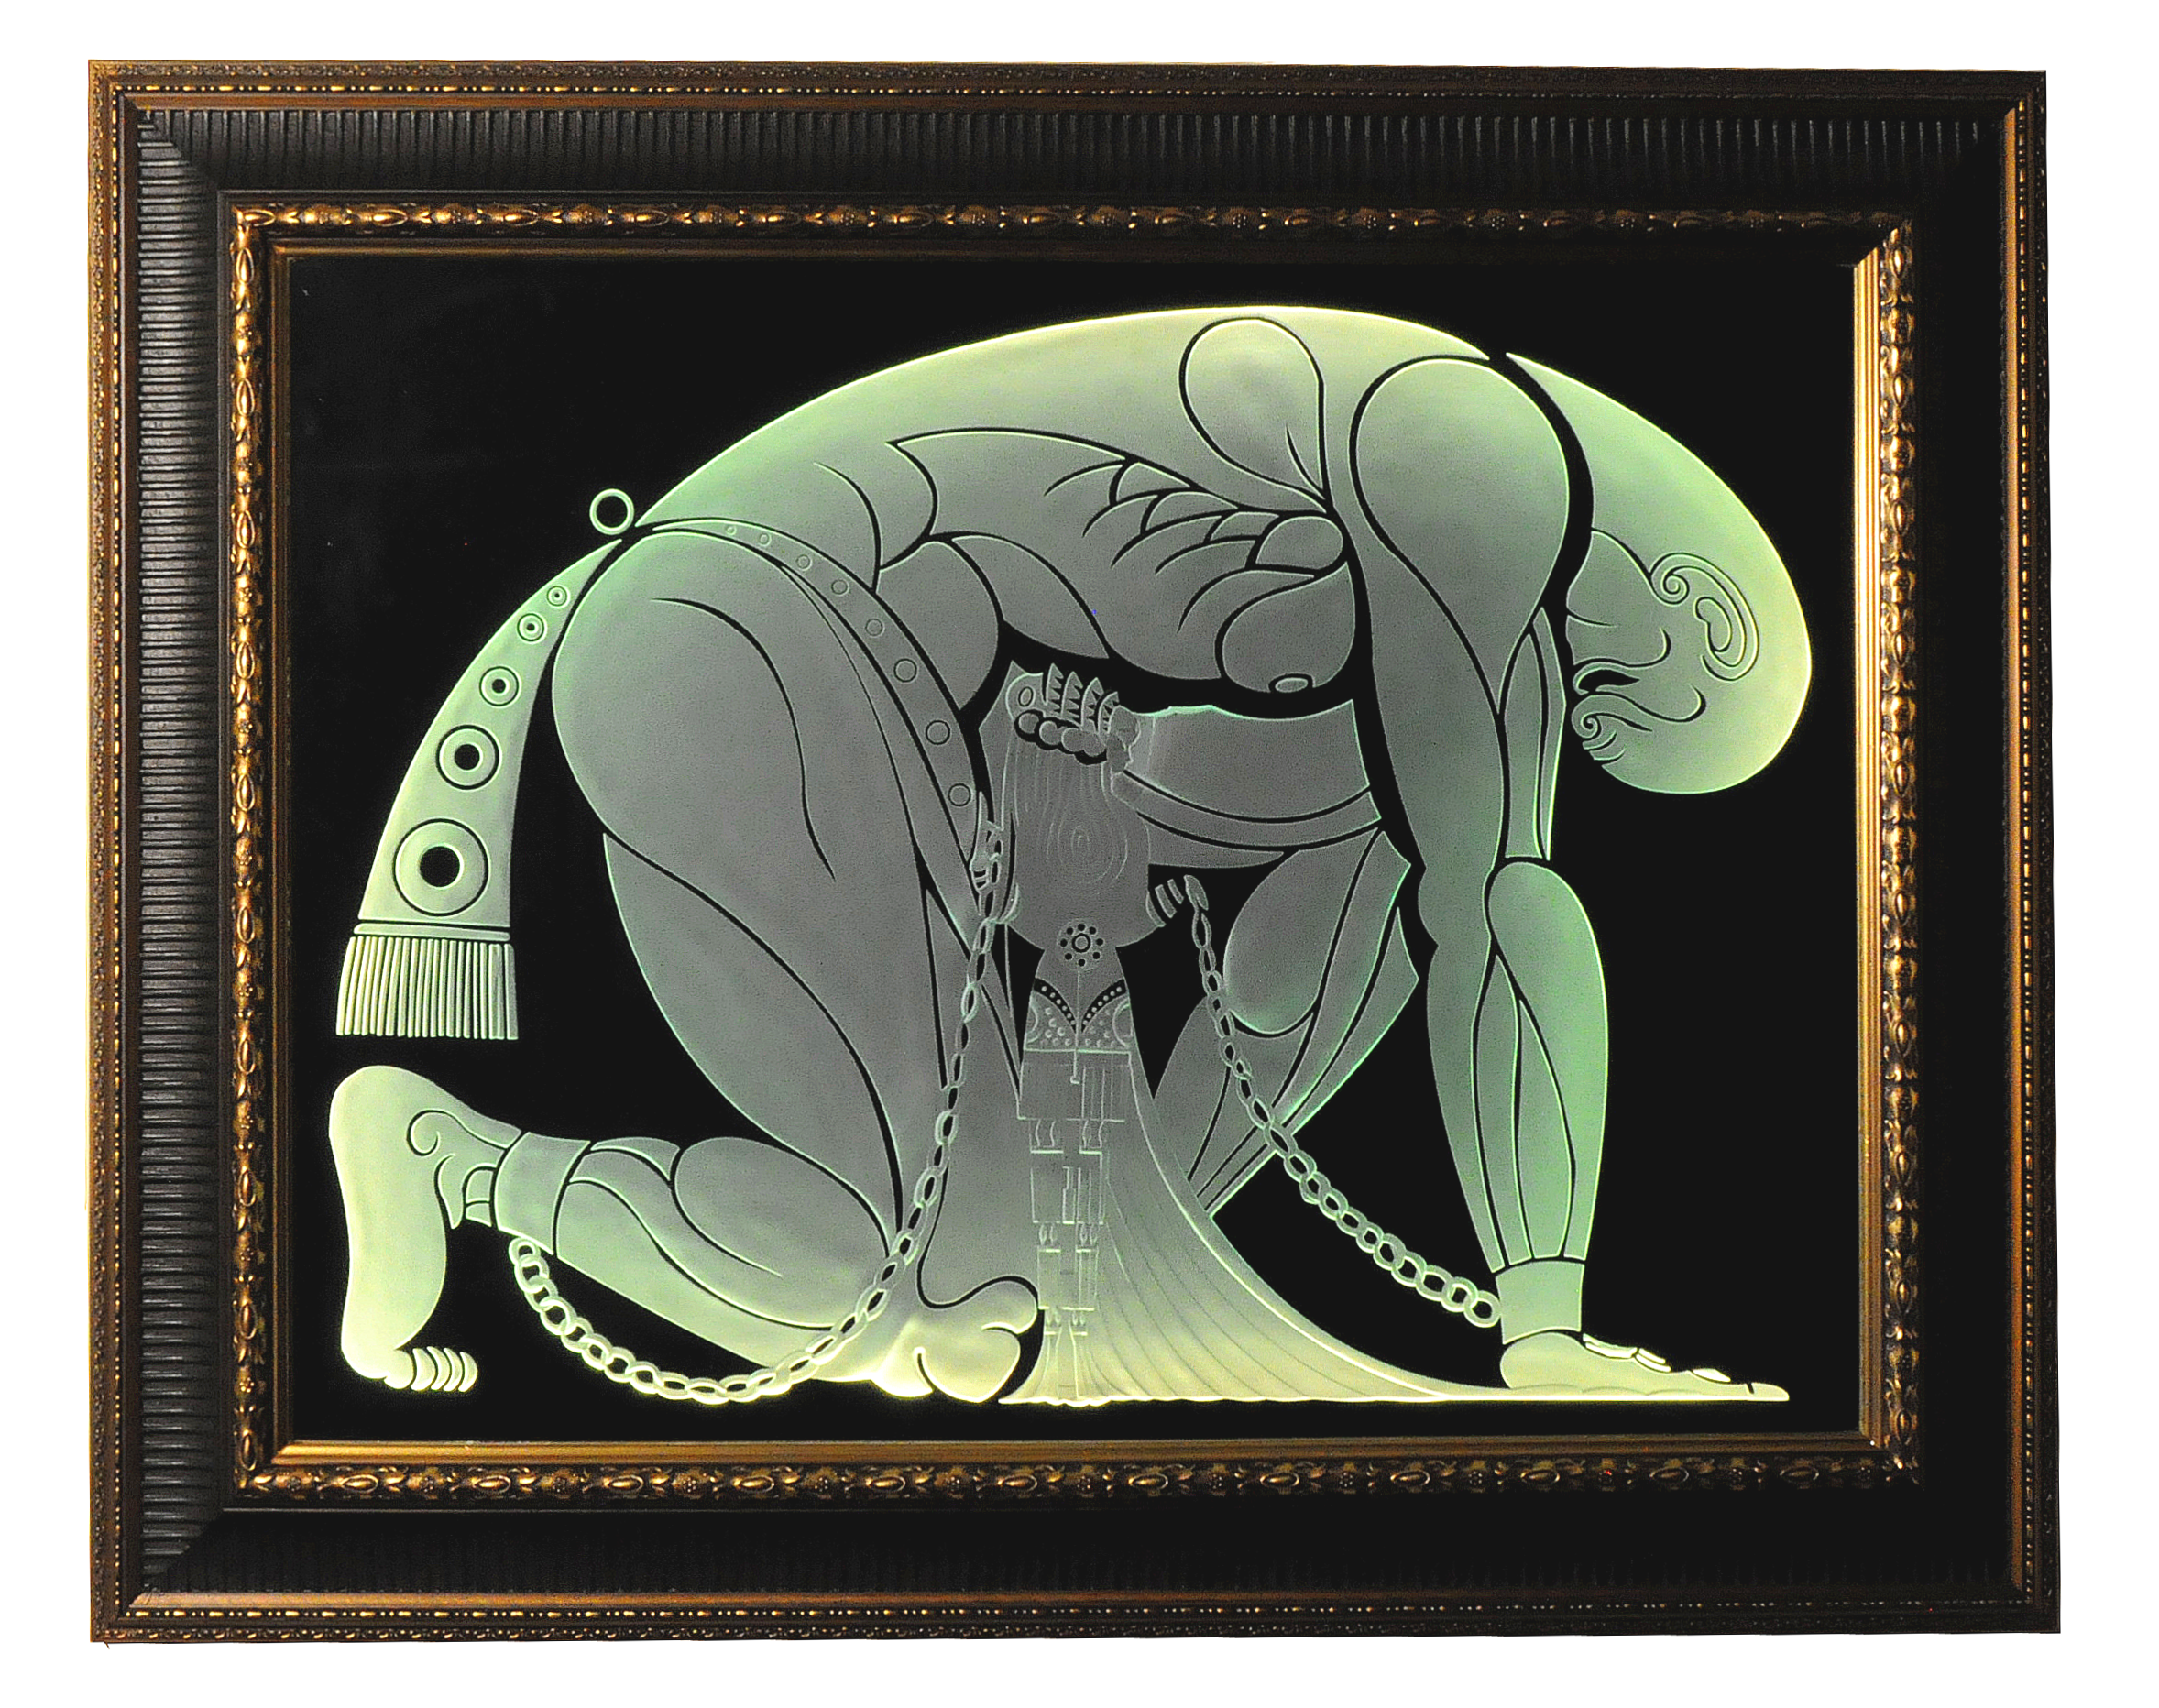 Illuminated, carved art glass mirror with Art Deco motif inspired by Erte's Samson and Delilah.